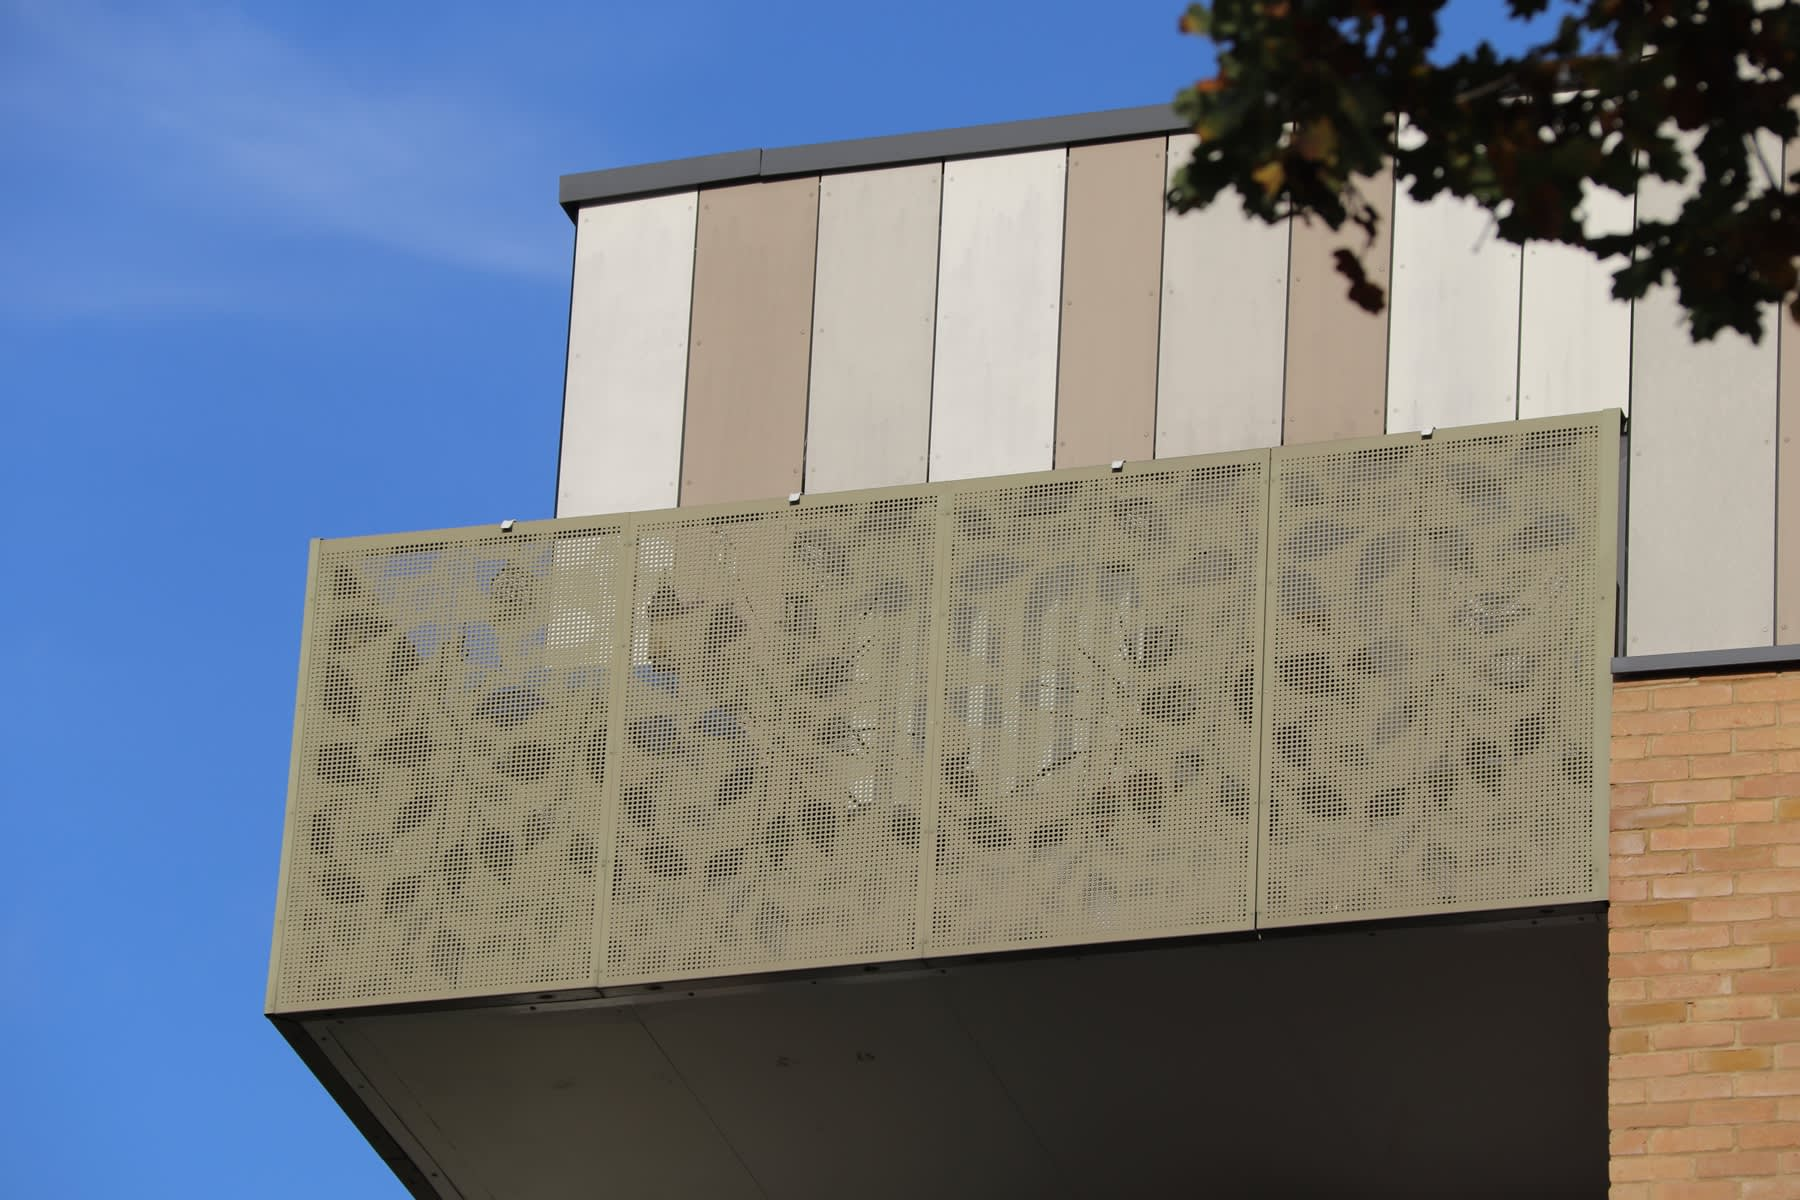 balconies with perforated balustrade panels in powder coated aluminium